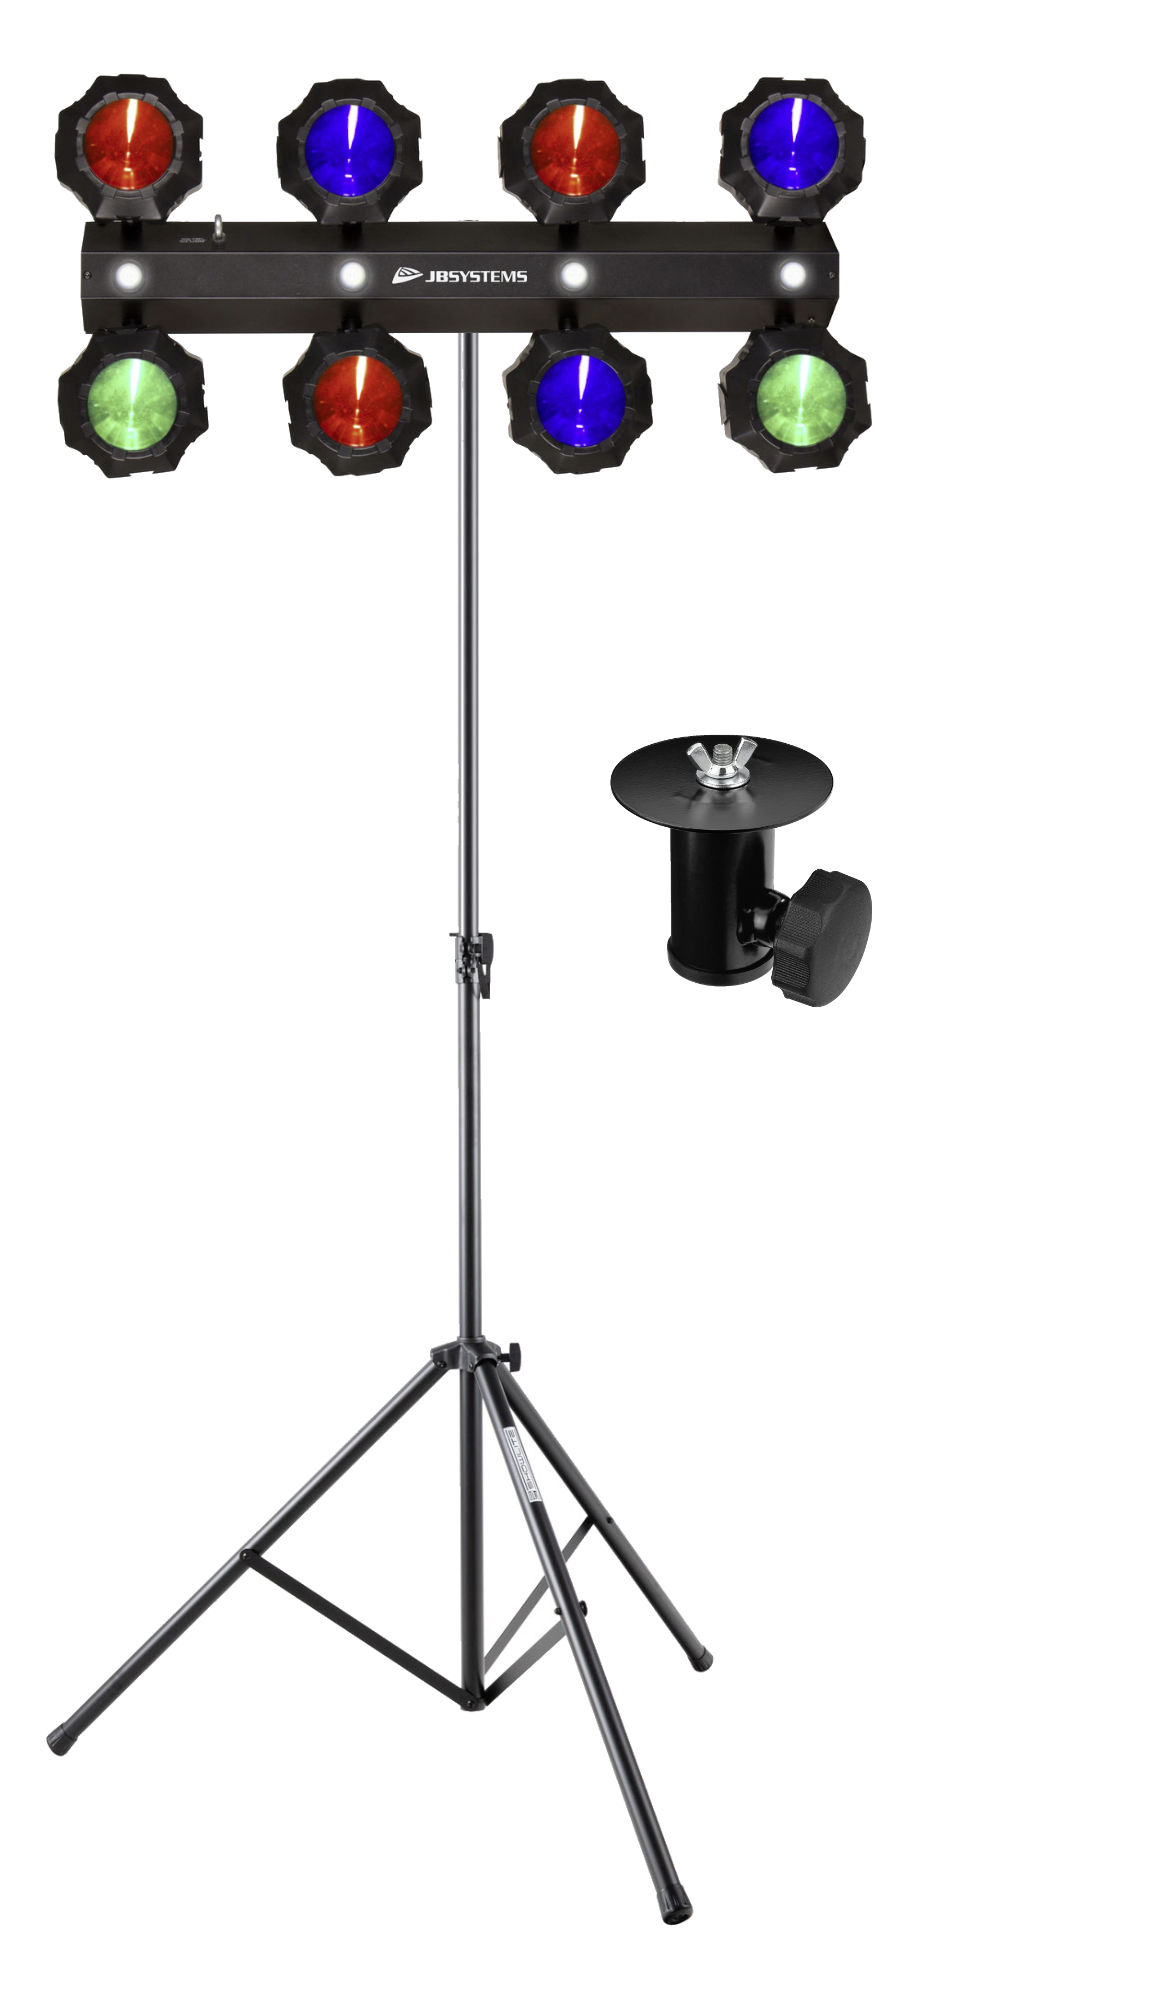 Lichtsets - JB Systems Party Beams LED RGB Lichtanlage Set - Onlineshop Musikhaus Kirstein